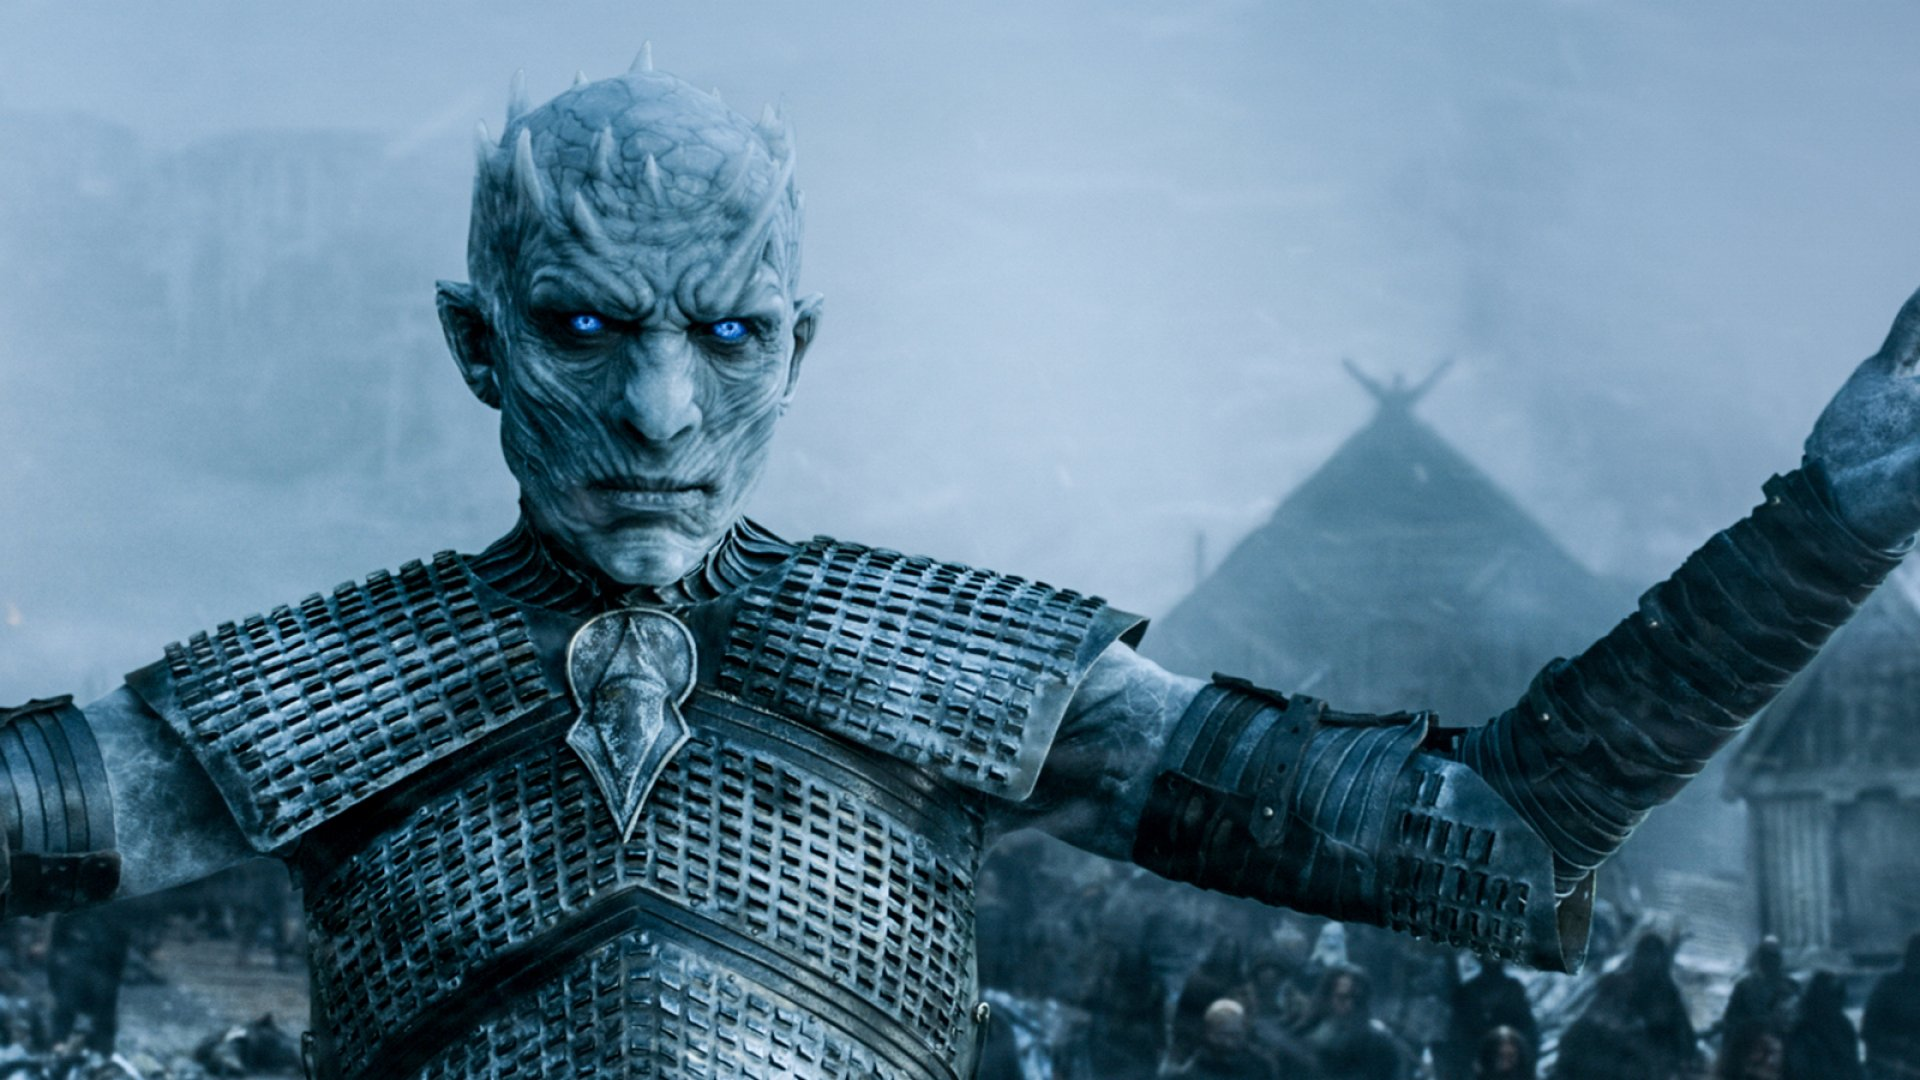 Game of Thrones Ice King.